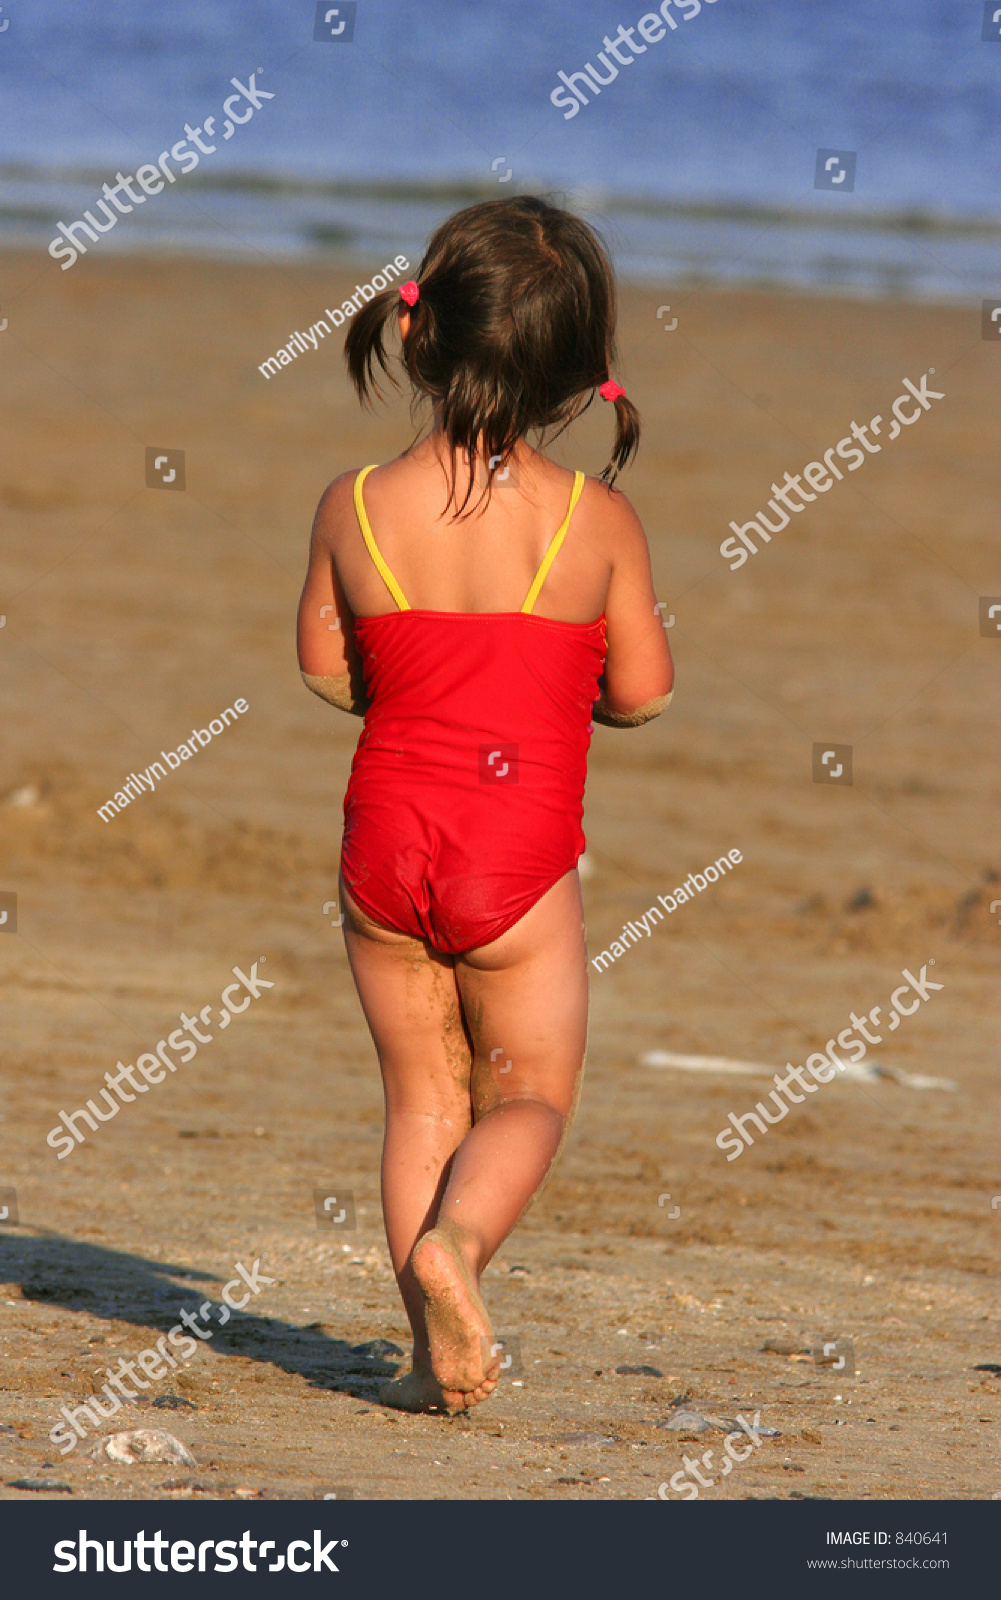 Little girl in bikini rear view Rear view of a little girl wearing a red swimsuit and walking on the beach.